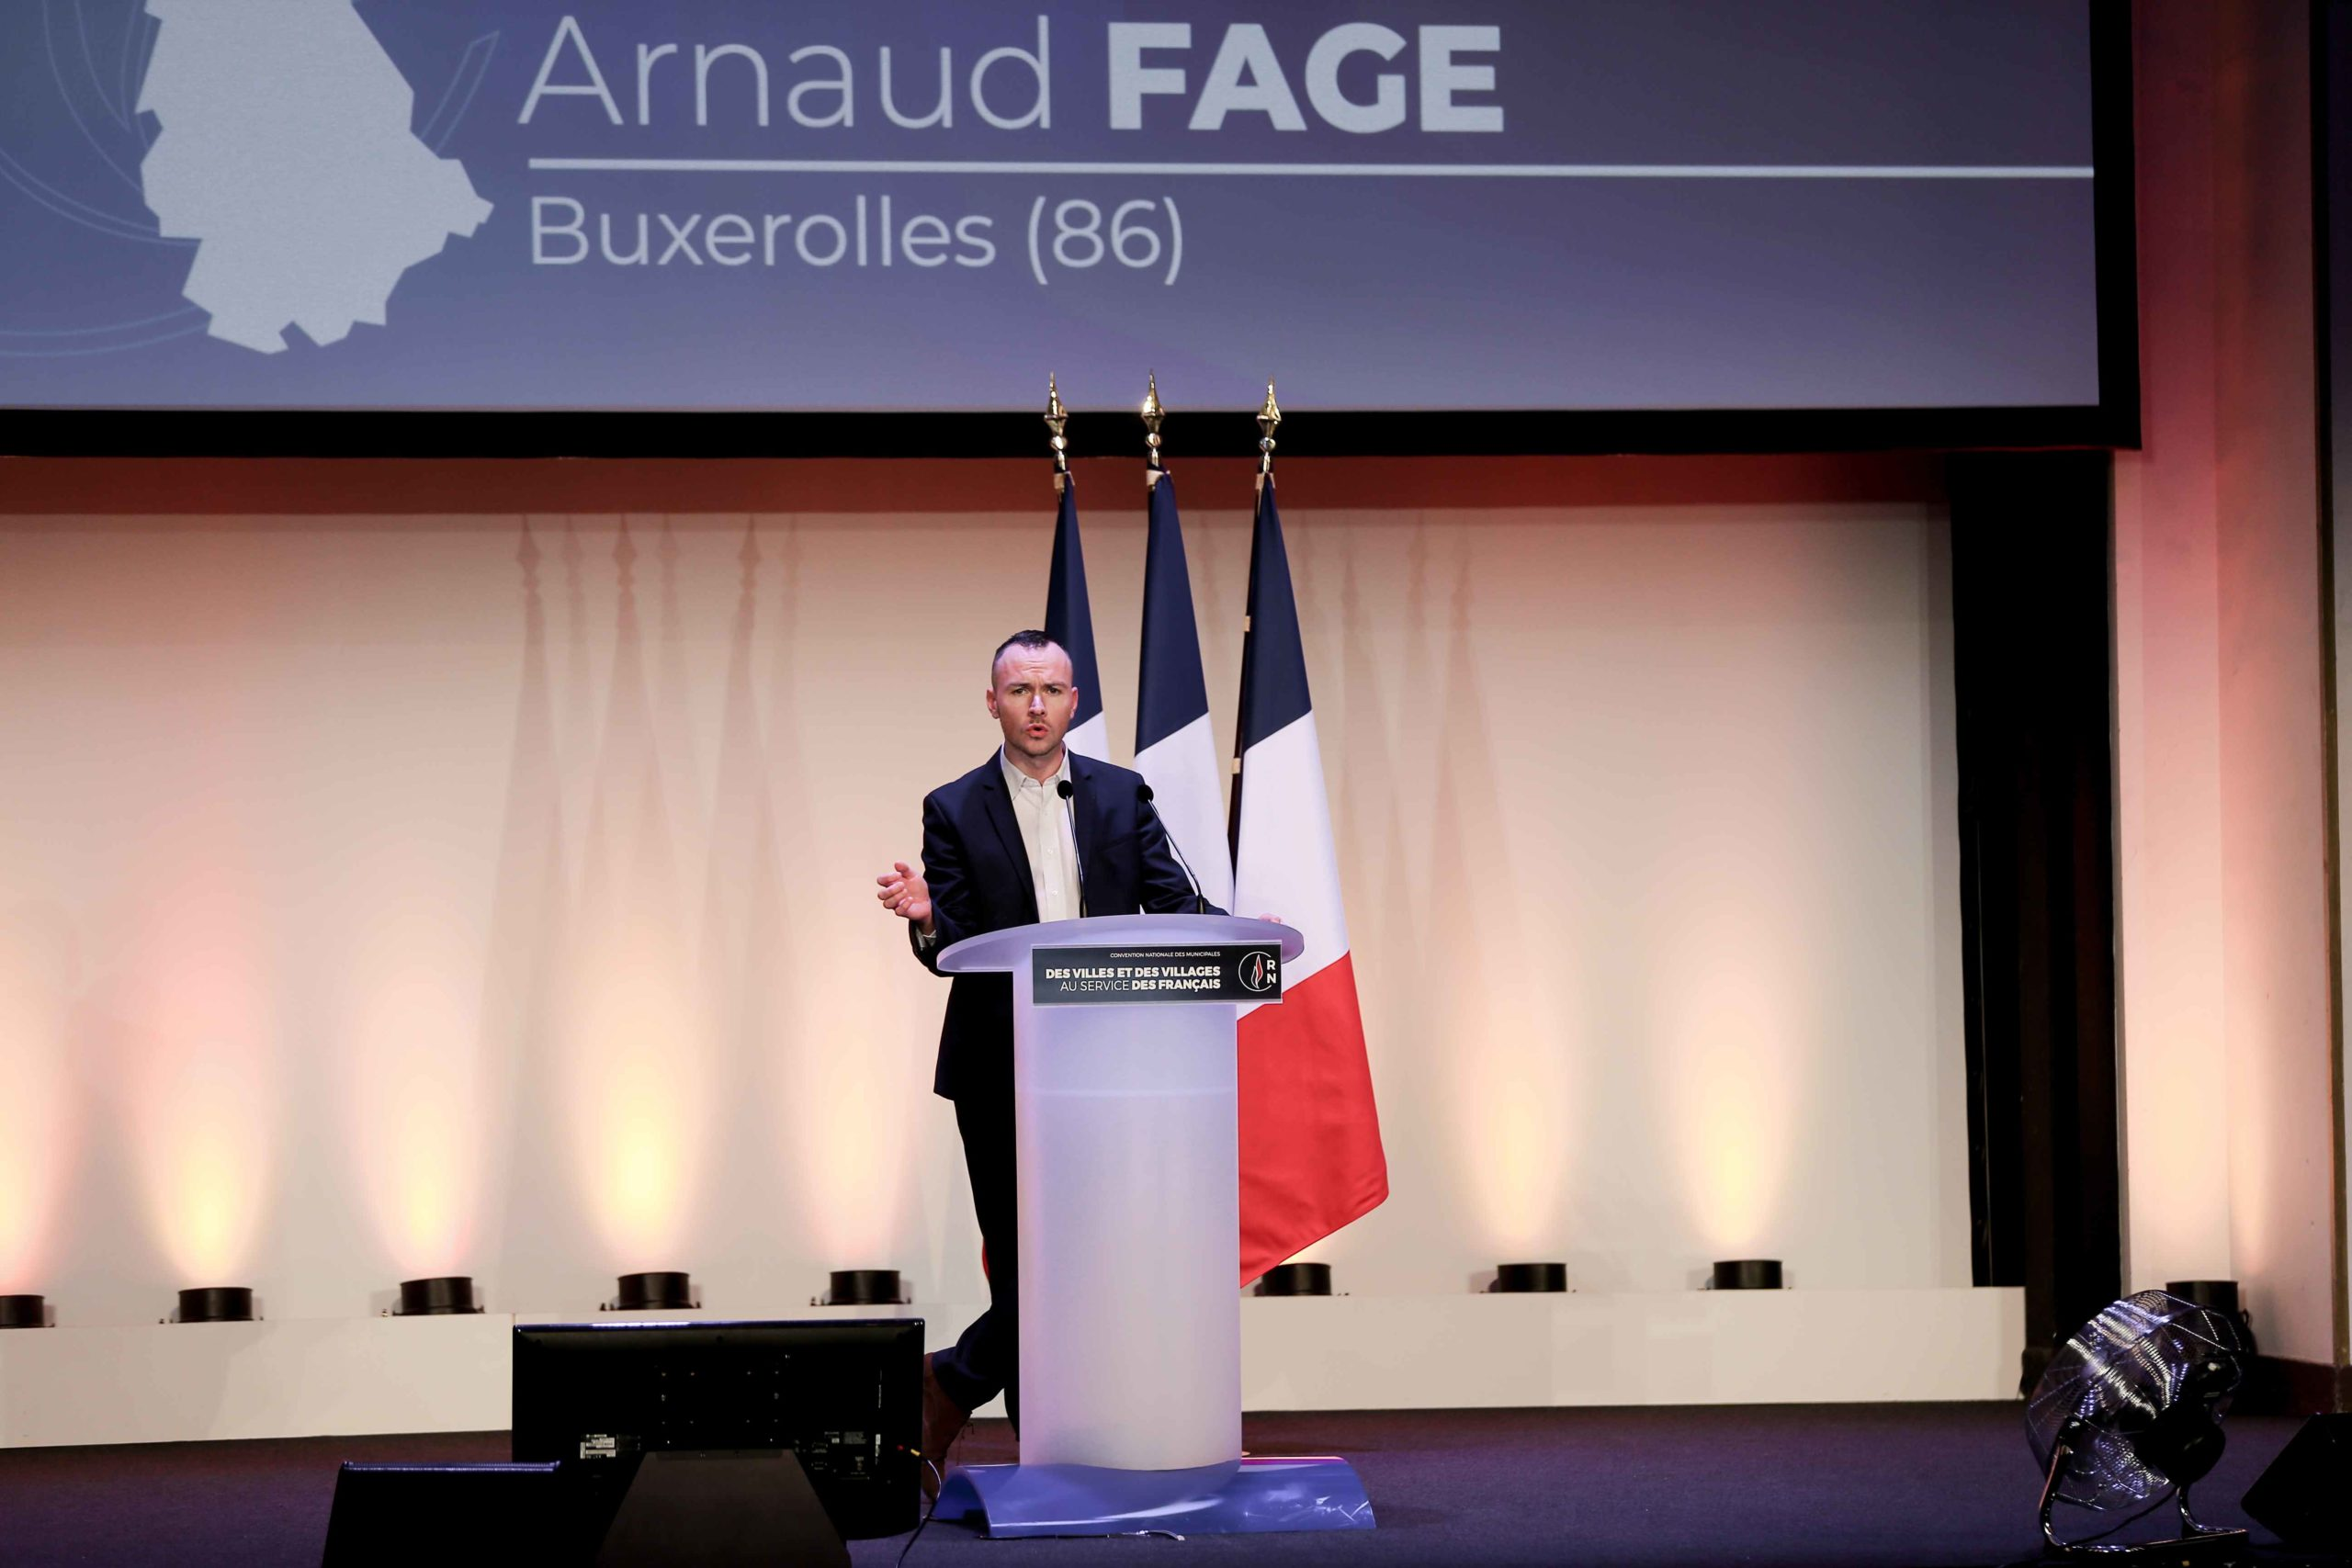 Arnaud Fage, the Rassemblement national (RN) candidate in the forthcoming mayoral election in Bruxerolles (Vienne), speaks in Paris, on January 12, 2020, during a meeting to launch the RN campaign candidates for the next municipal elections.  The 2020 Fren